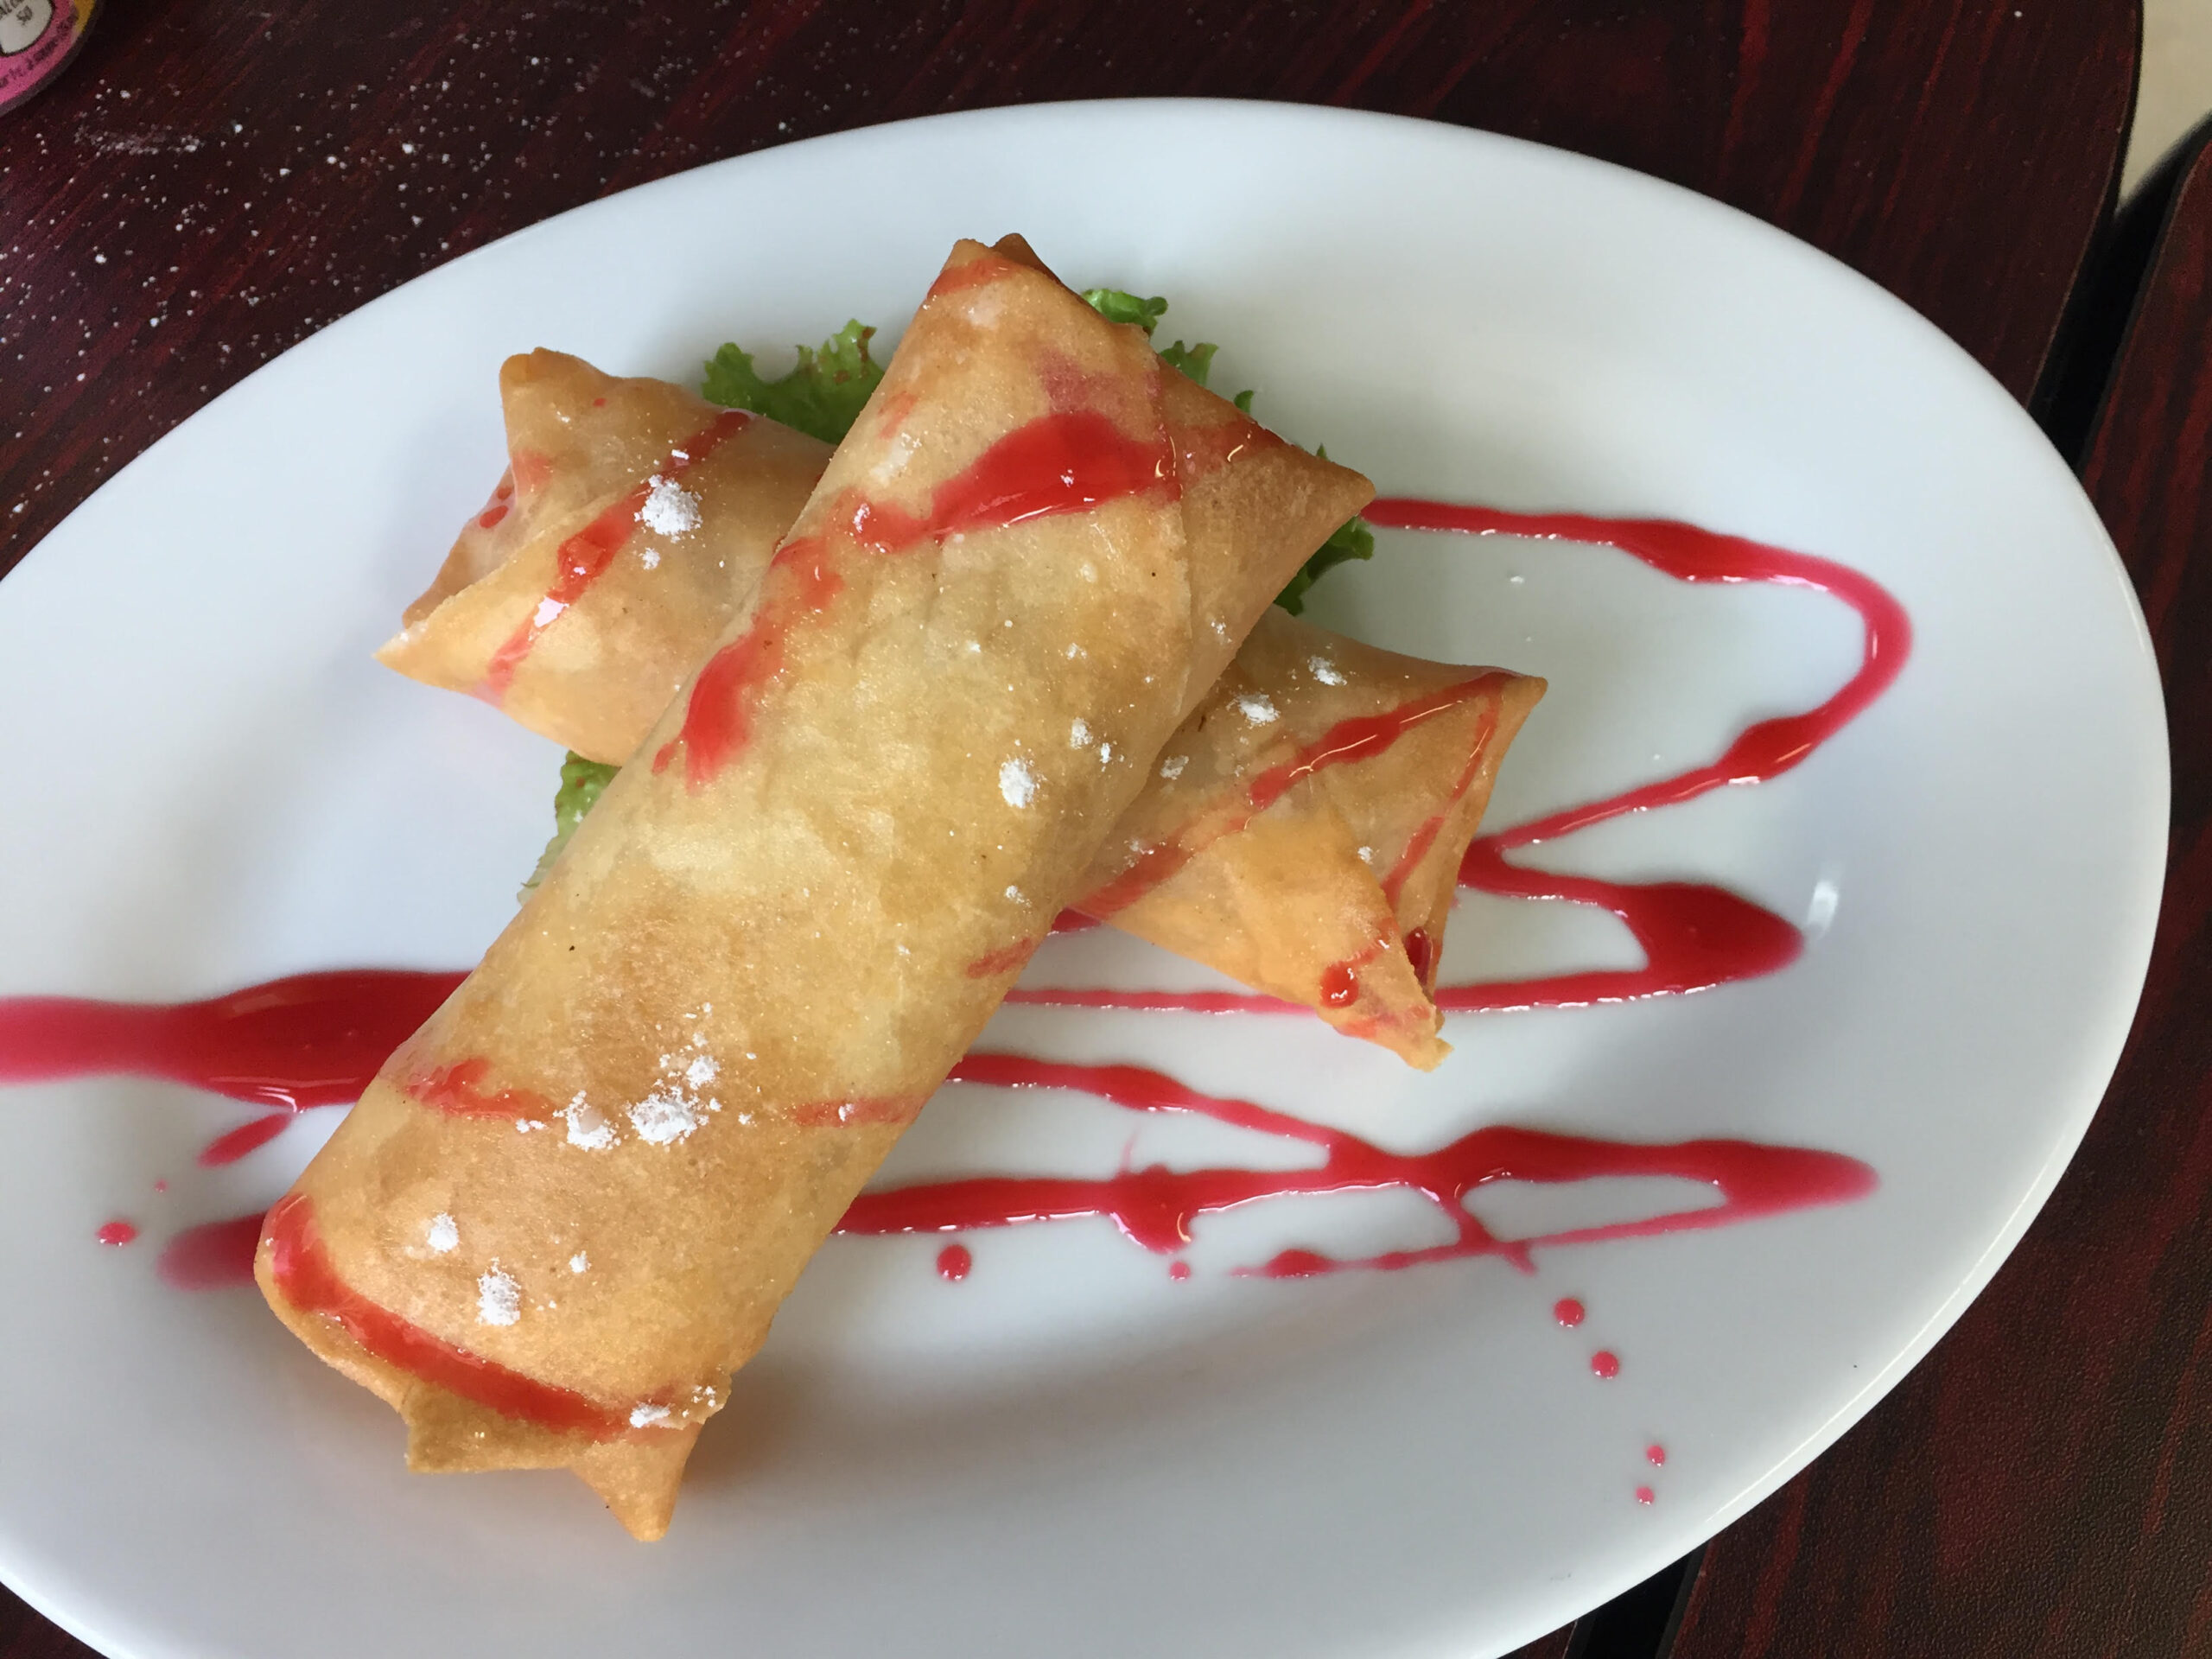 Turon from Tropical Hut Philippine Cuisine in Windsor, Ontario.